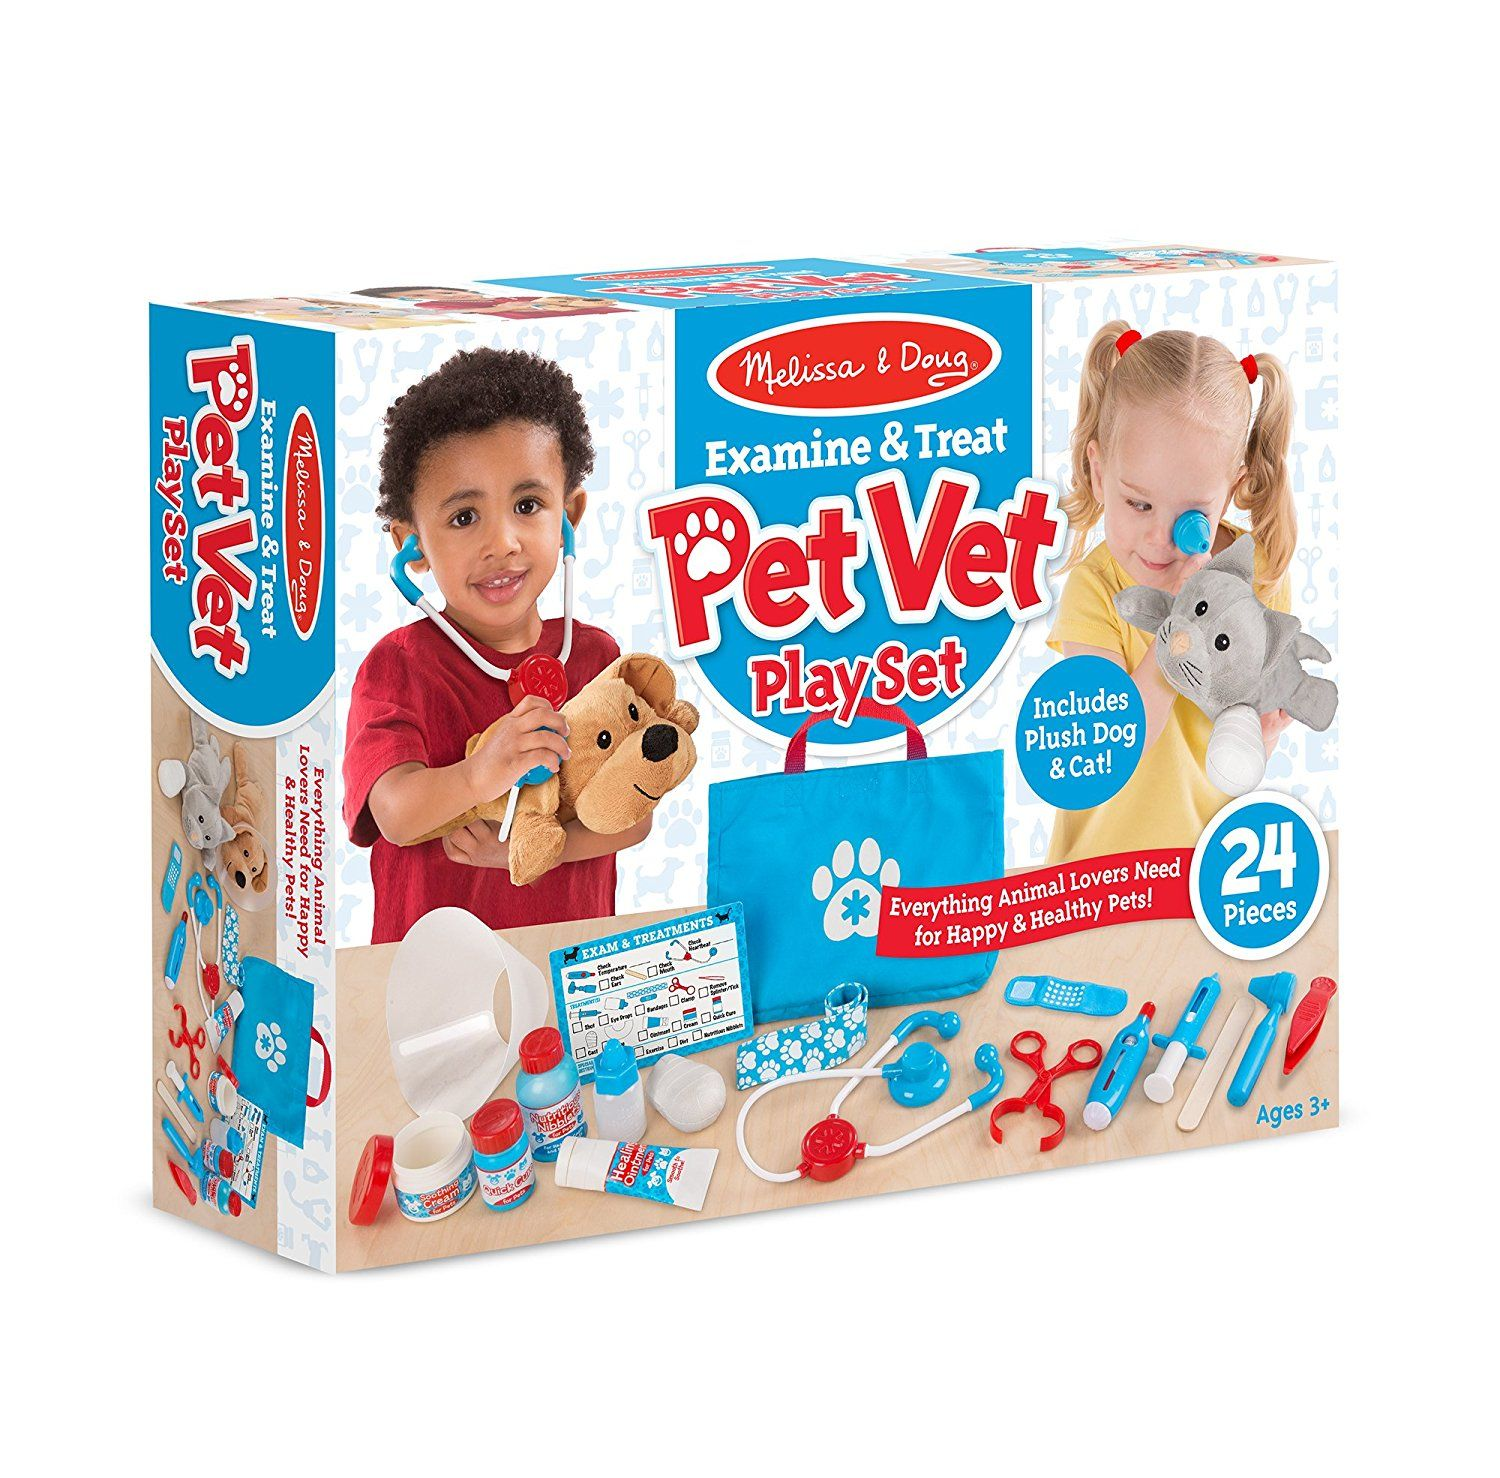 Toys and Co. | Product Detail | Examine & Treat Pet Vet Play Set